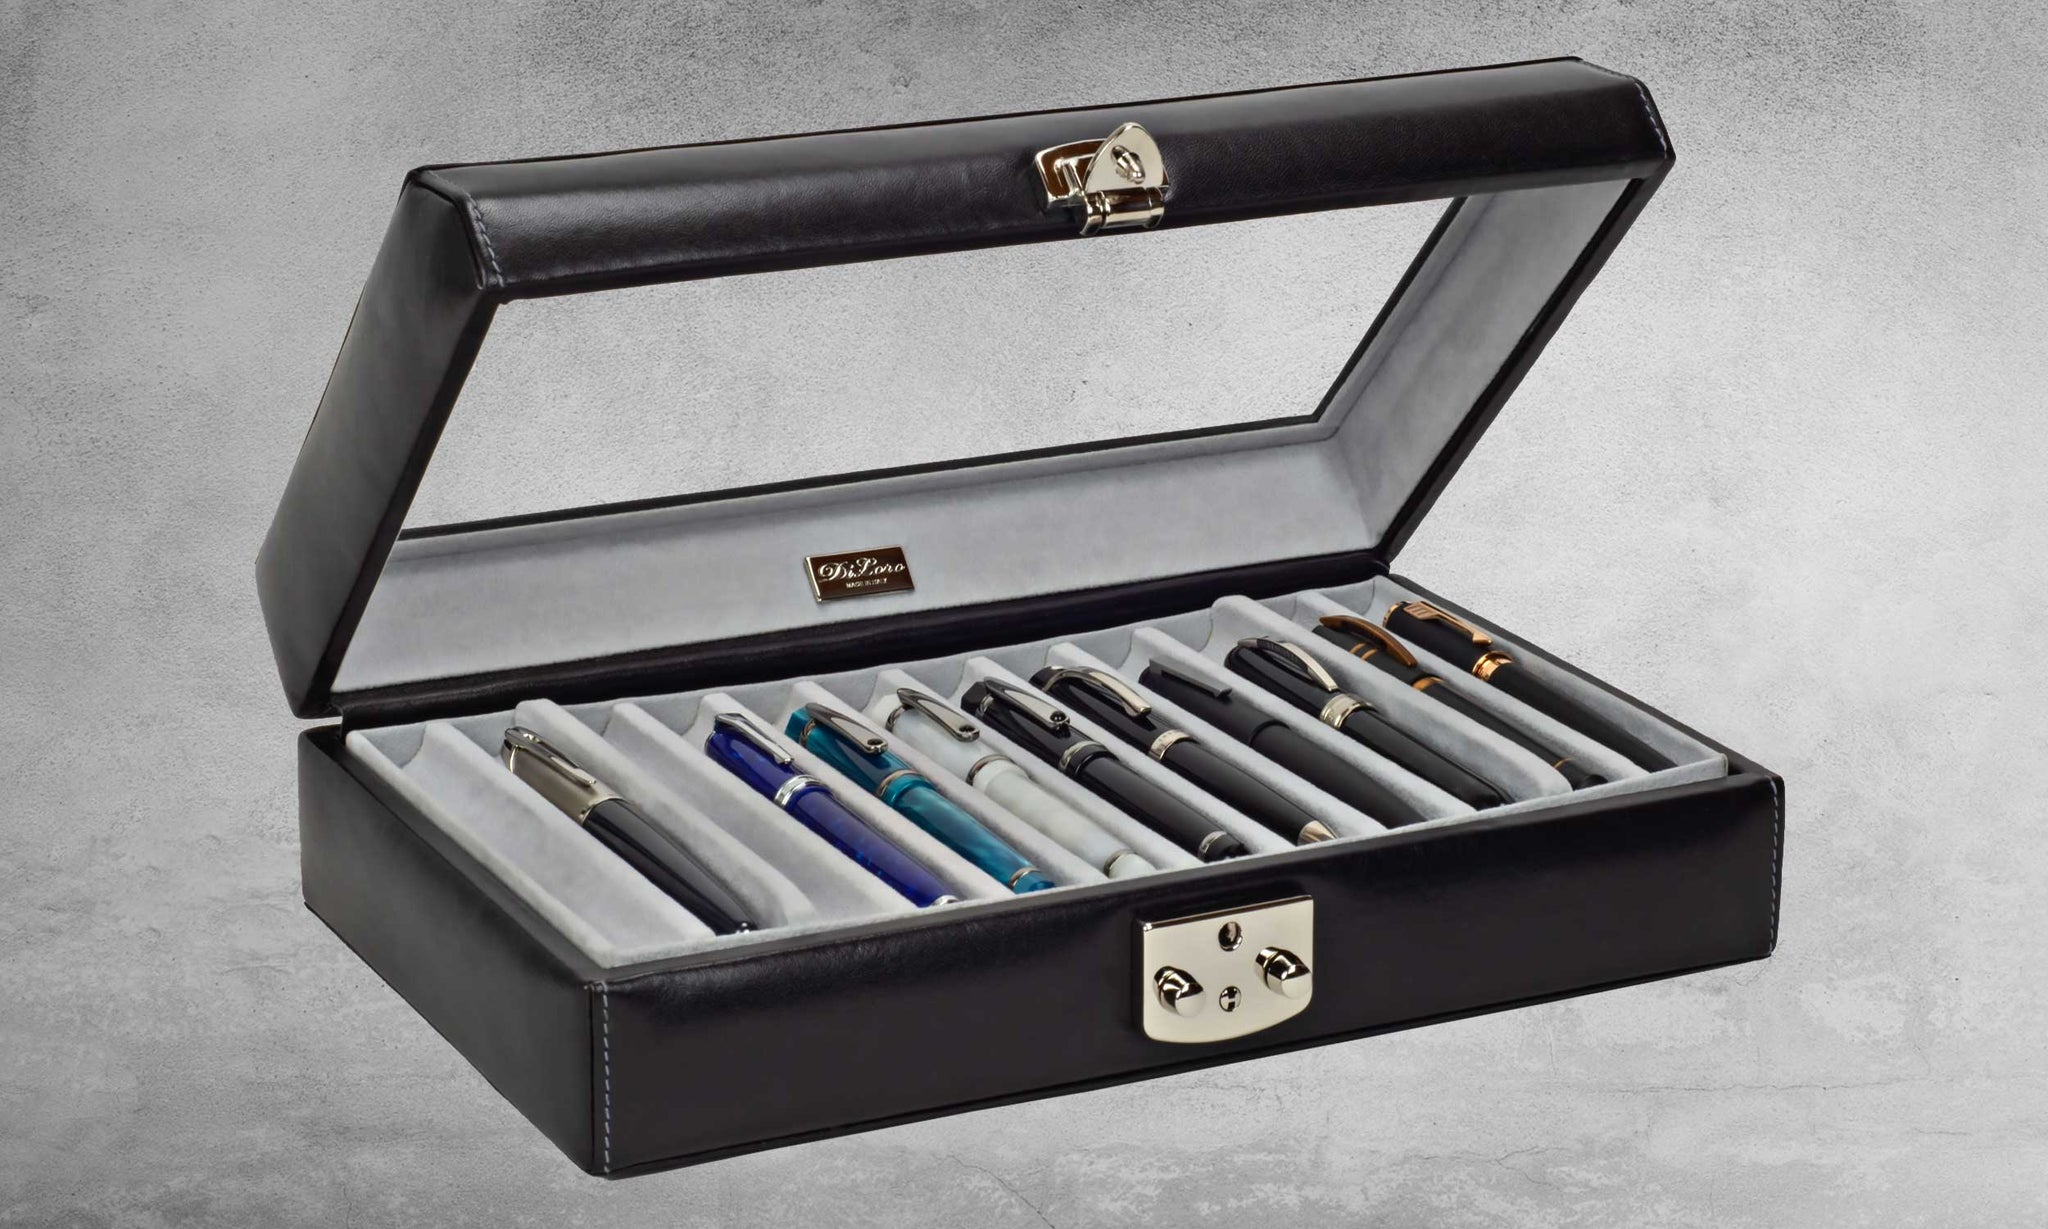 DiLoro Italian Leather 24 Pen Case Display Holder in Midnight Black